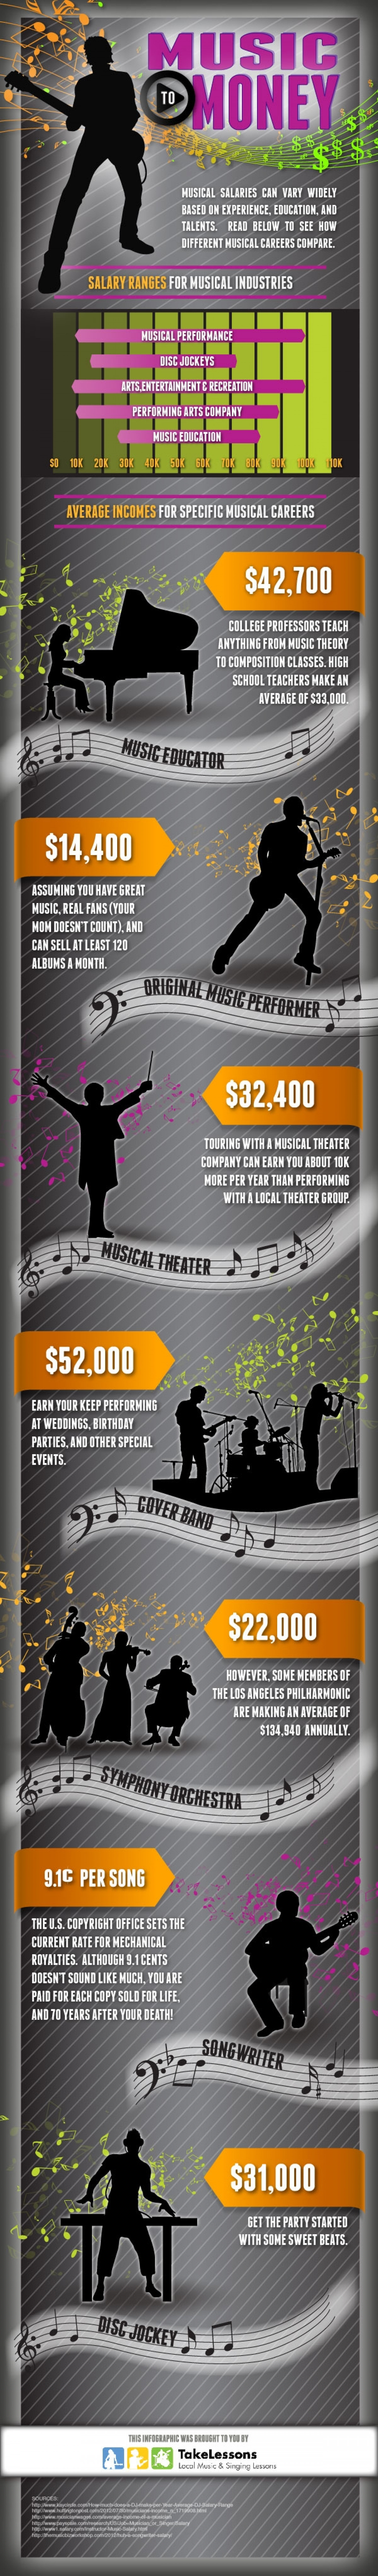 Music to Money Infographic